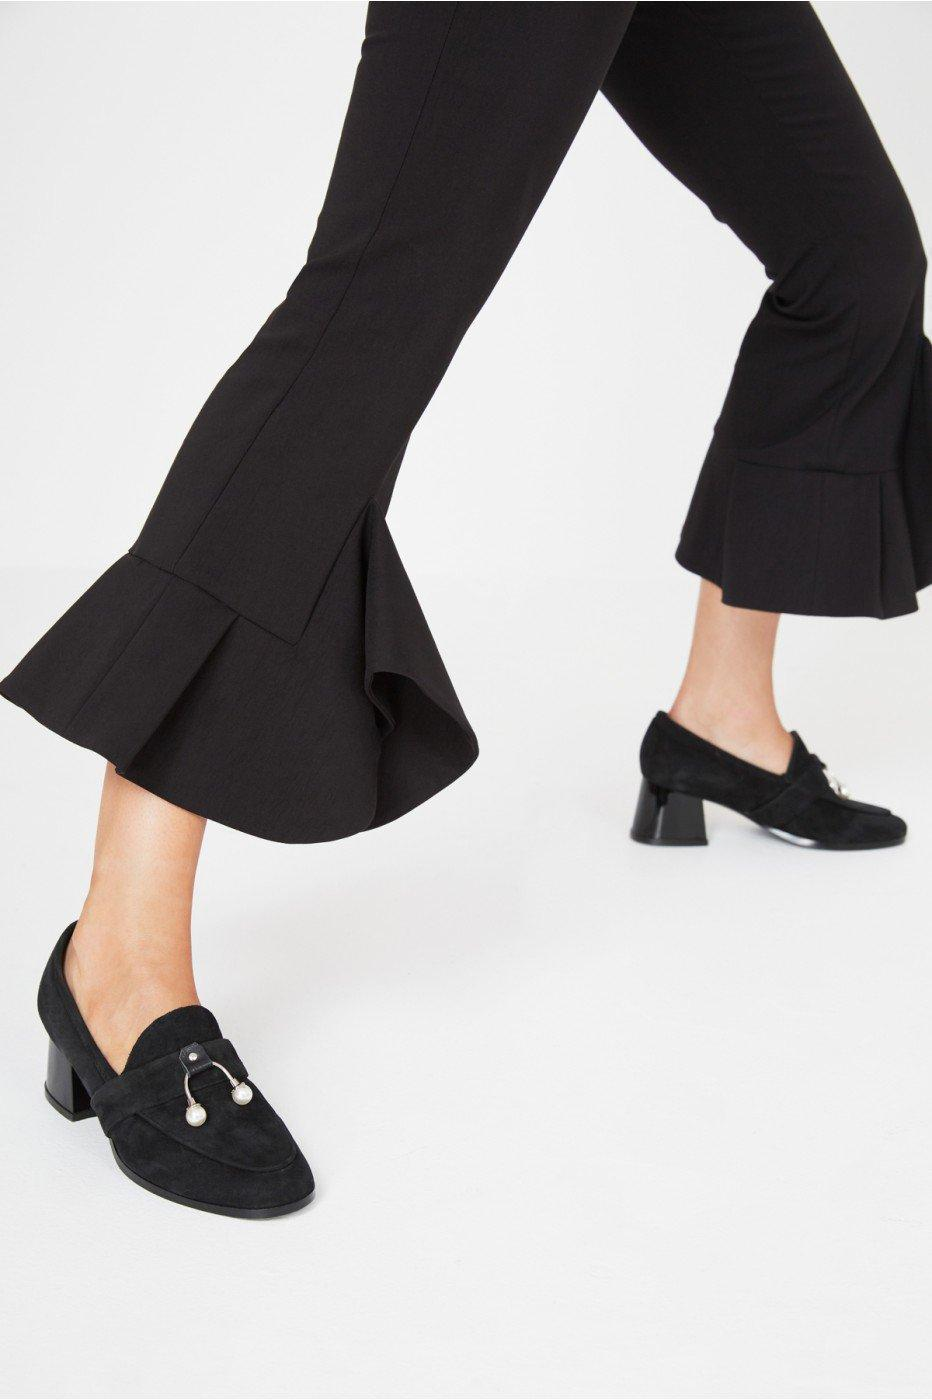 Jaggar Intermix Loafer Heel In Black